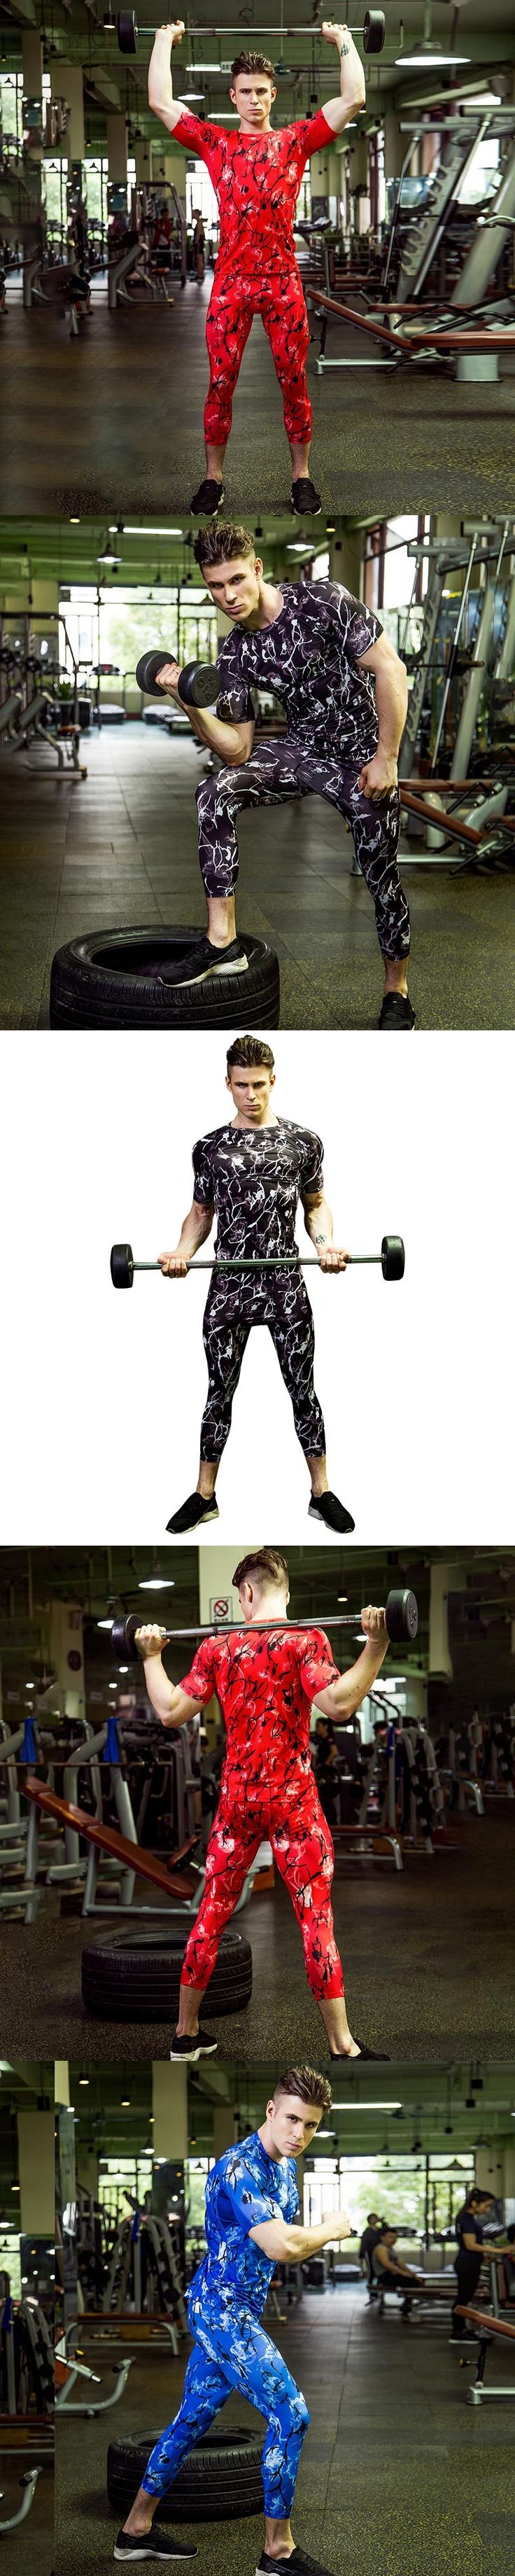 YD Running Set T-Shirt and Pants Men Compression Tights Underwear Sets Crossfit Bodybuilding Fitness Sport Suit Men's Sportswear